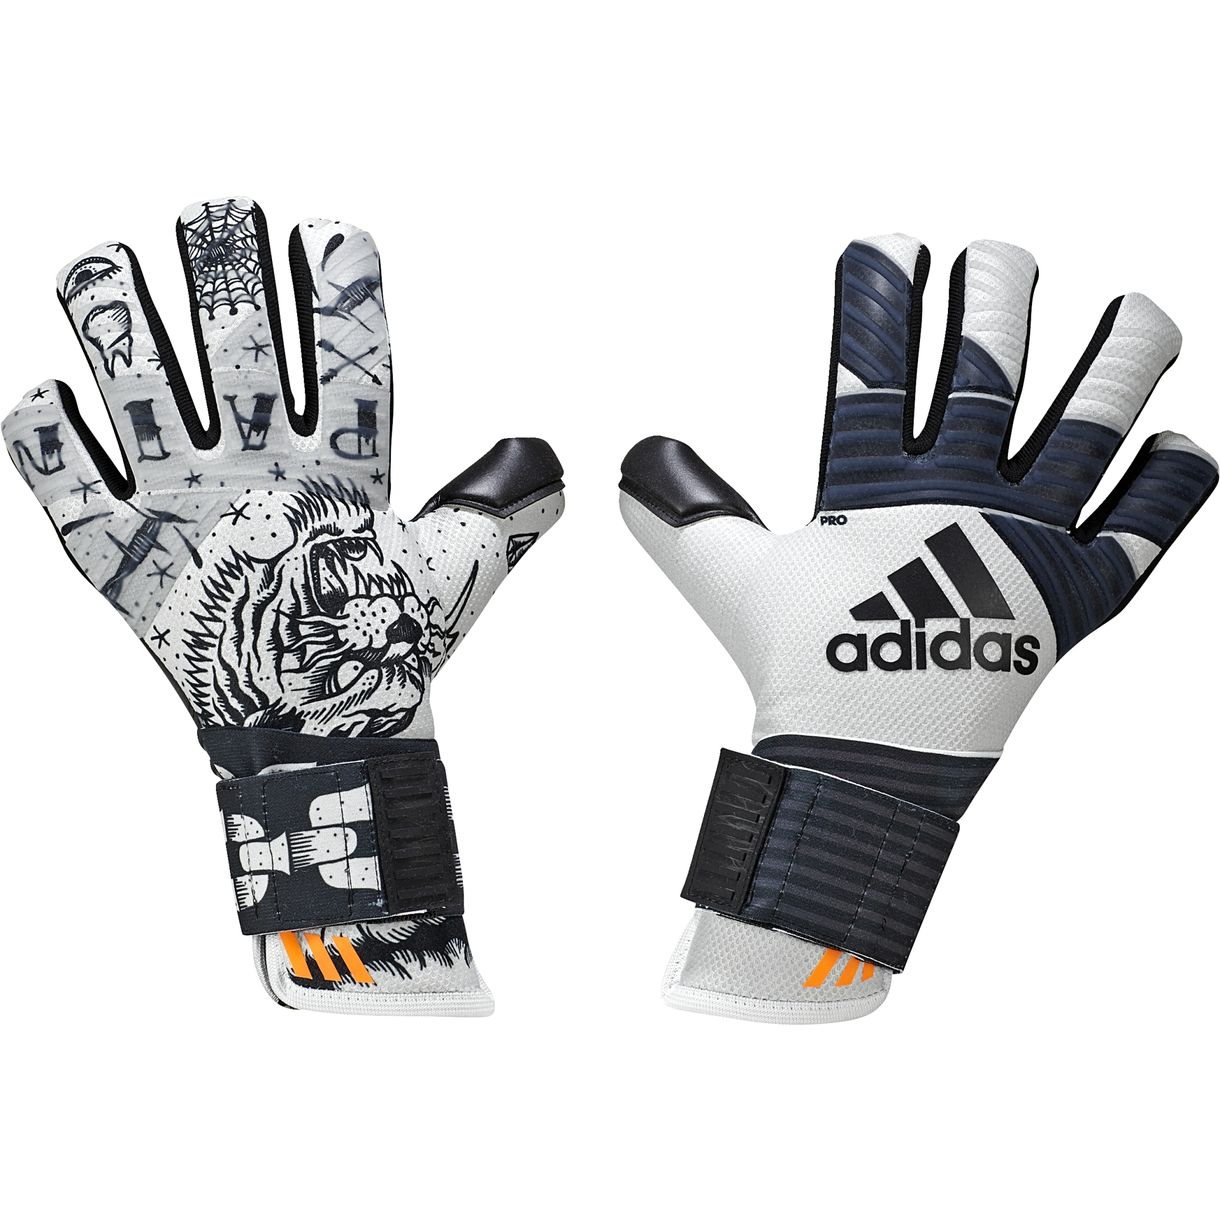 ... Click to enlarge image adidas_ace_trans_pro_2_face_goalkeeper_gloves_white_core_black_solar_red_m.jpg ...